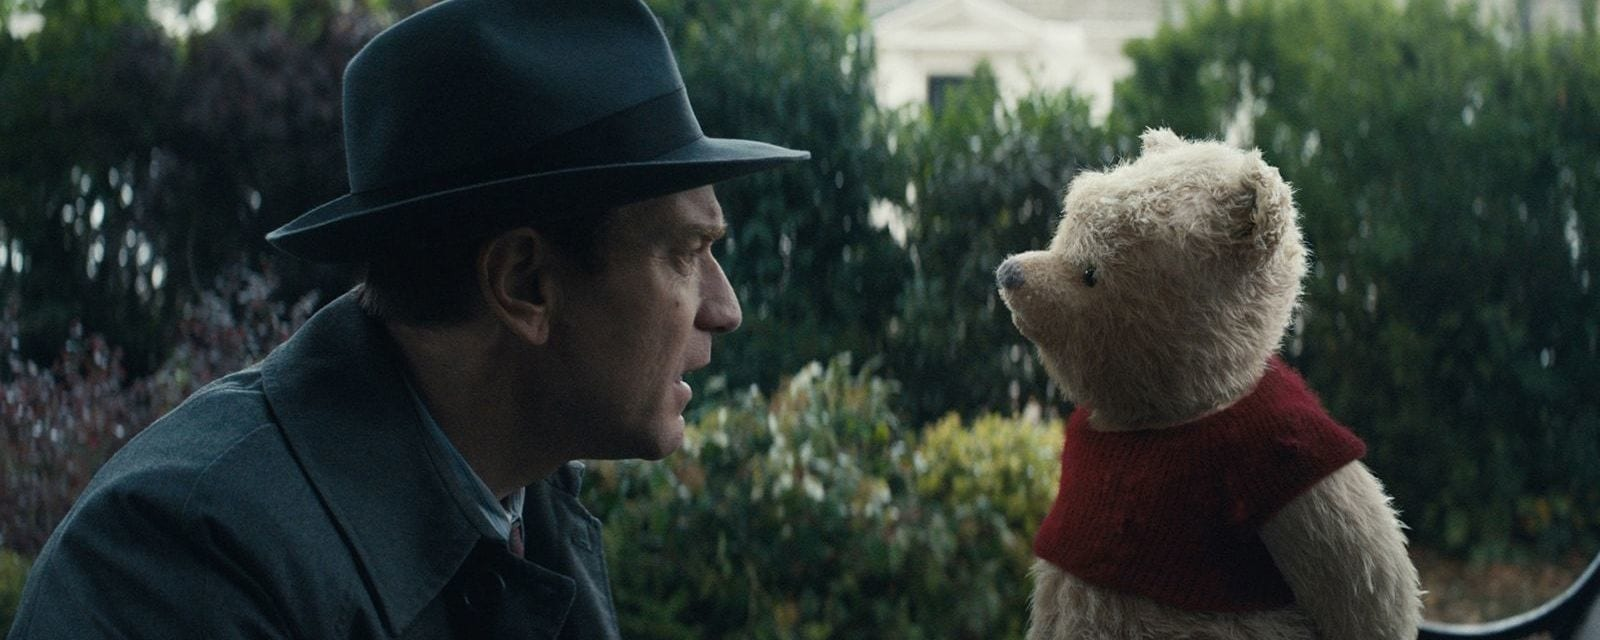 Ewan McGregor plays Christopher Robin opposite his longtime friend Winnie the Pooh.